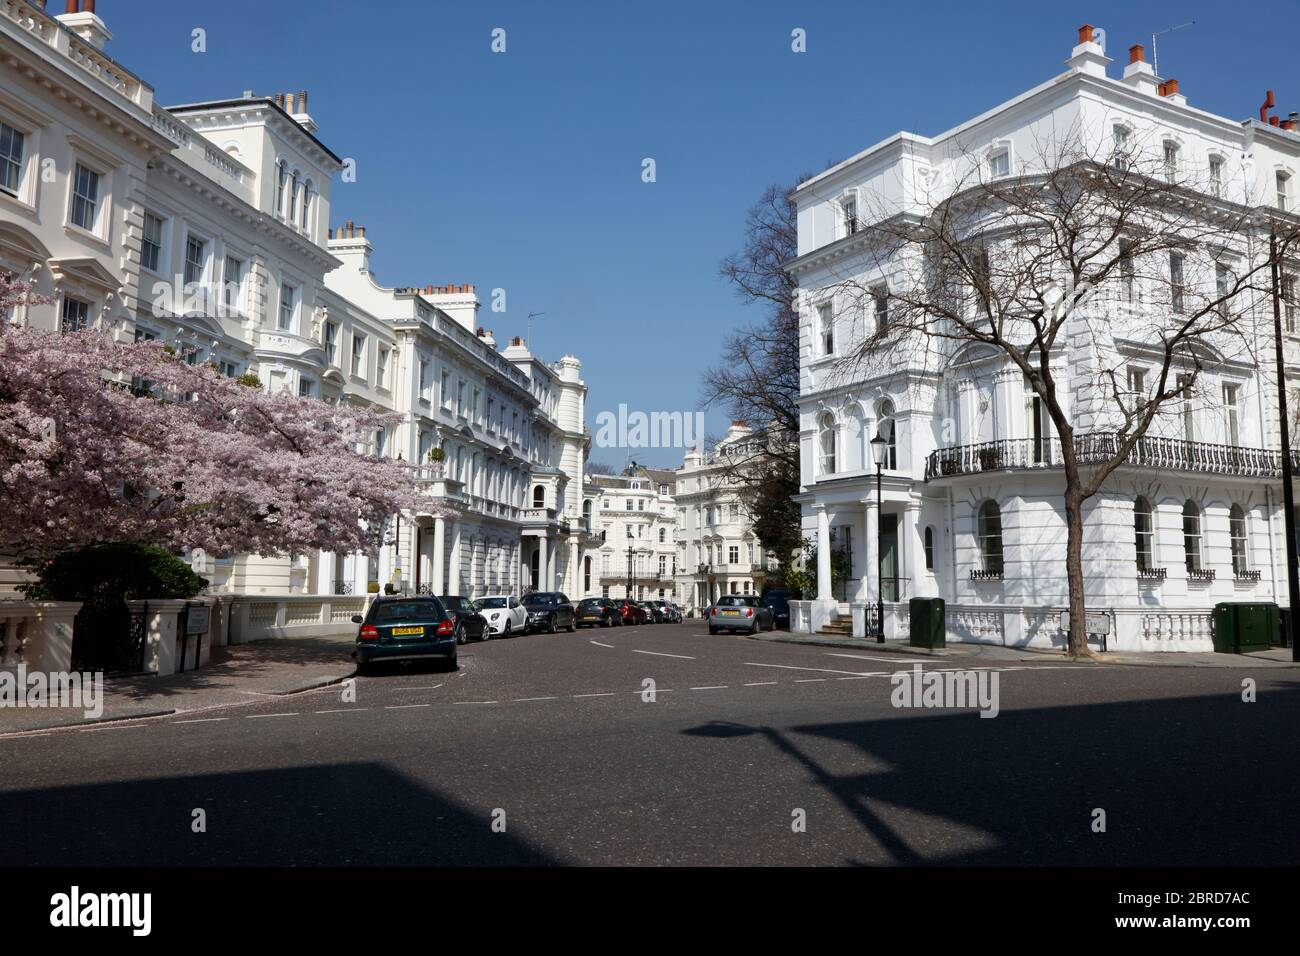 View across Kensington Park Gardens to Stanley Crescent, Notting Hill, London, UK Stock Photo